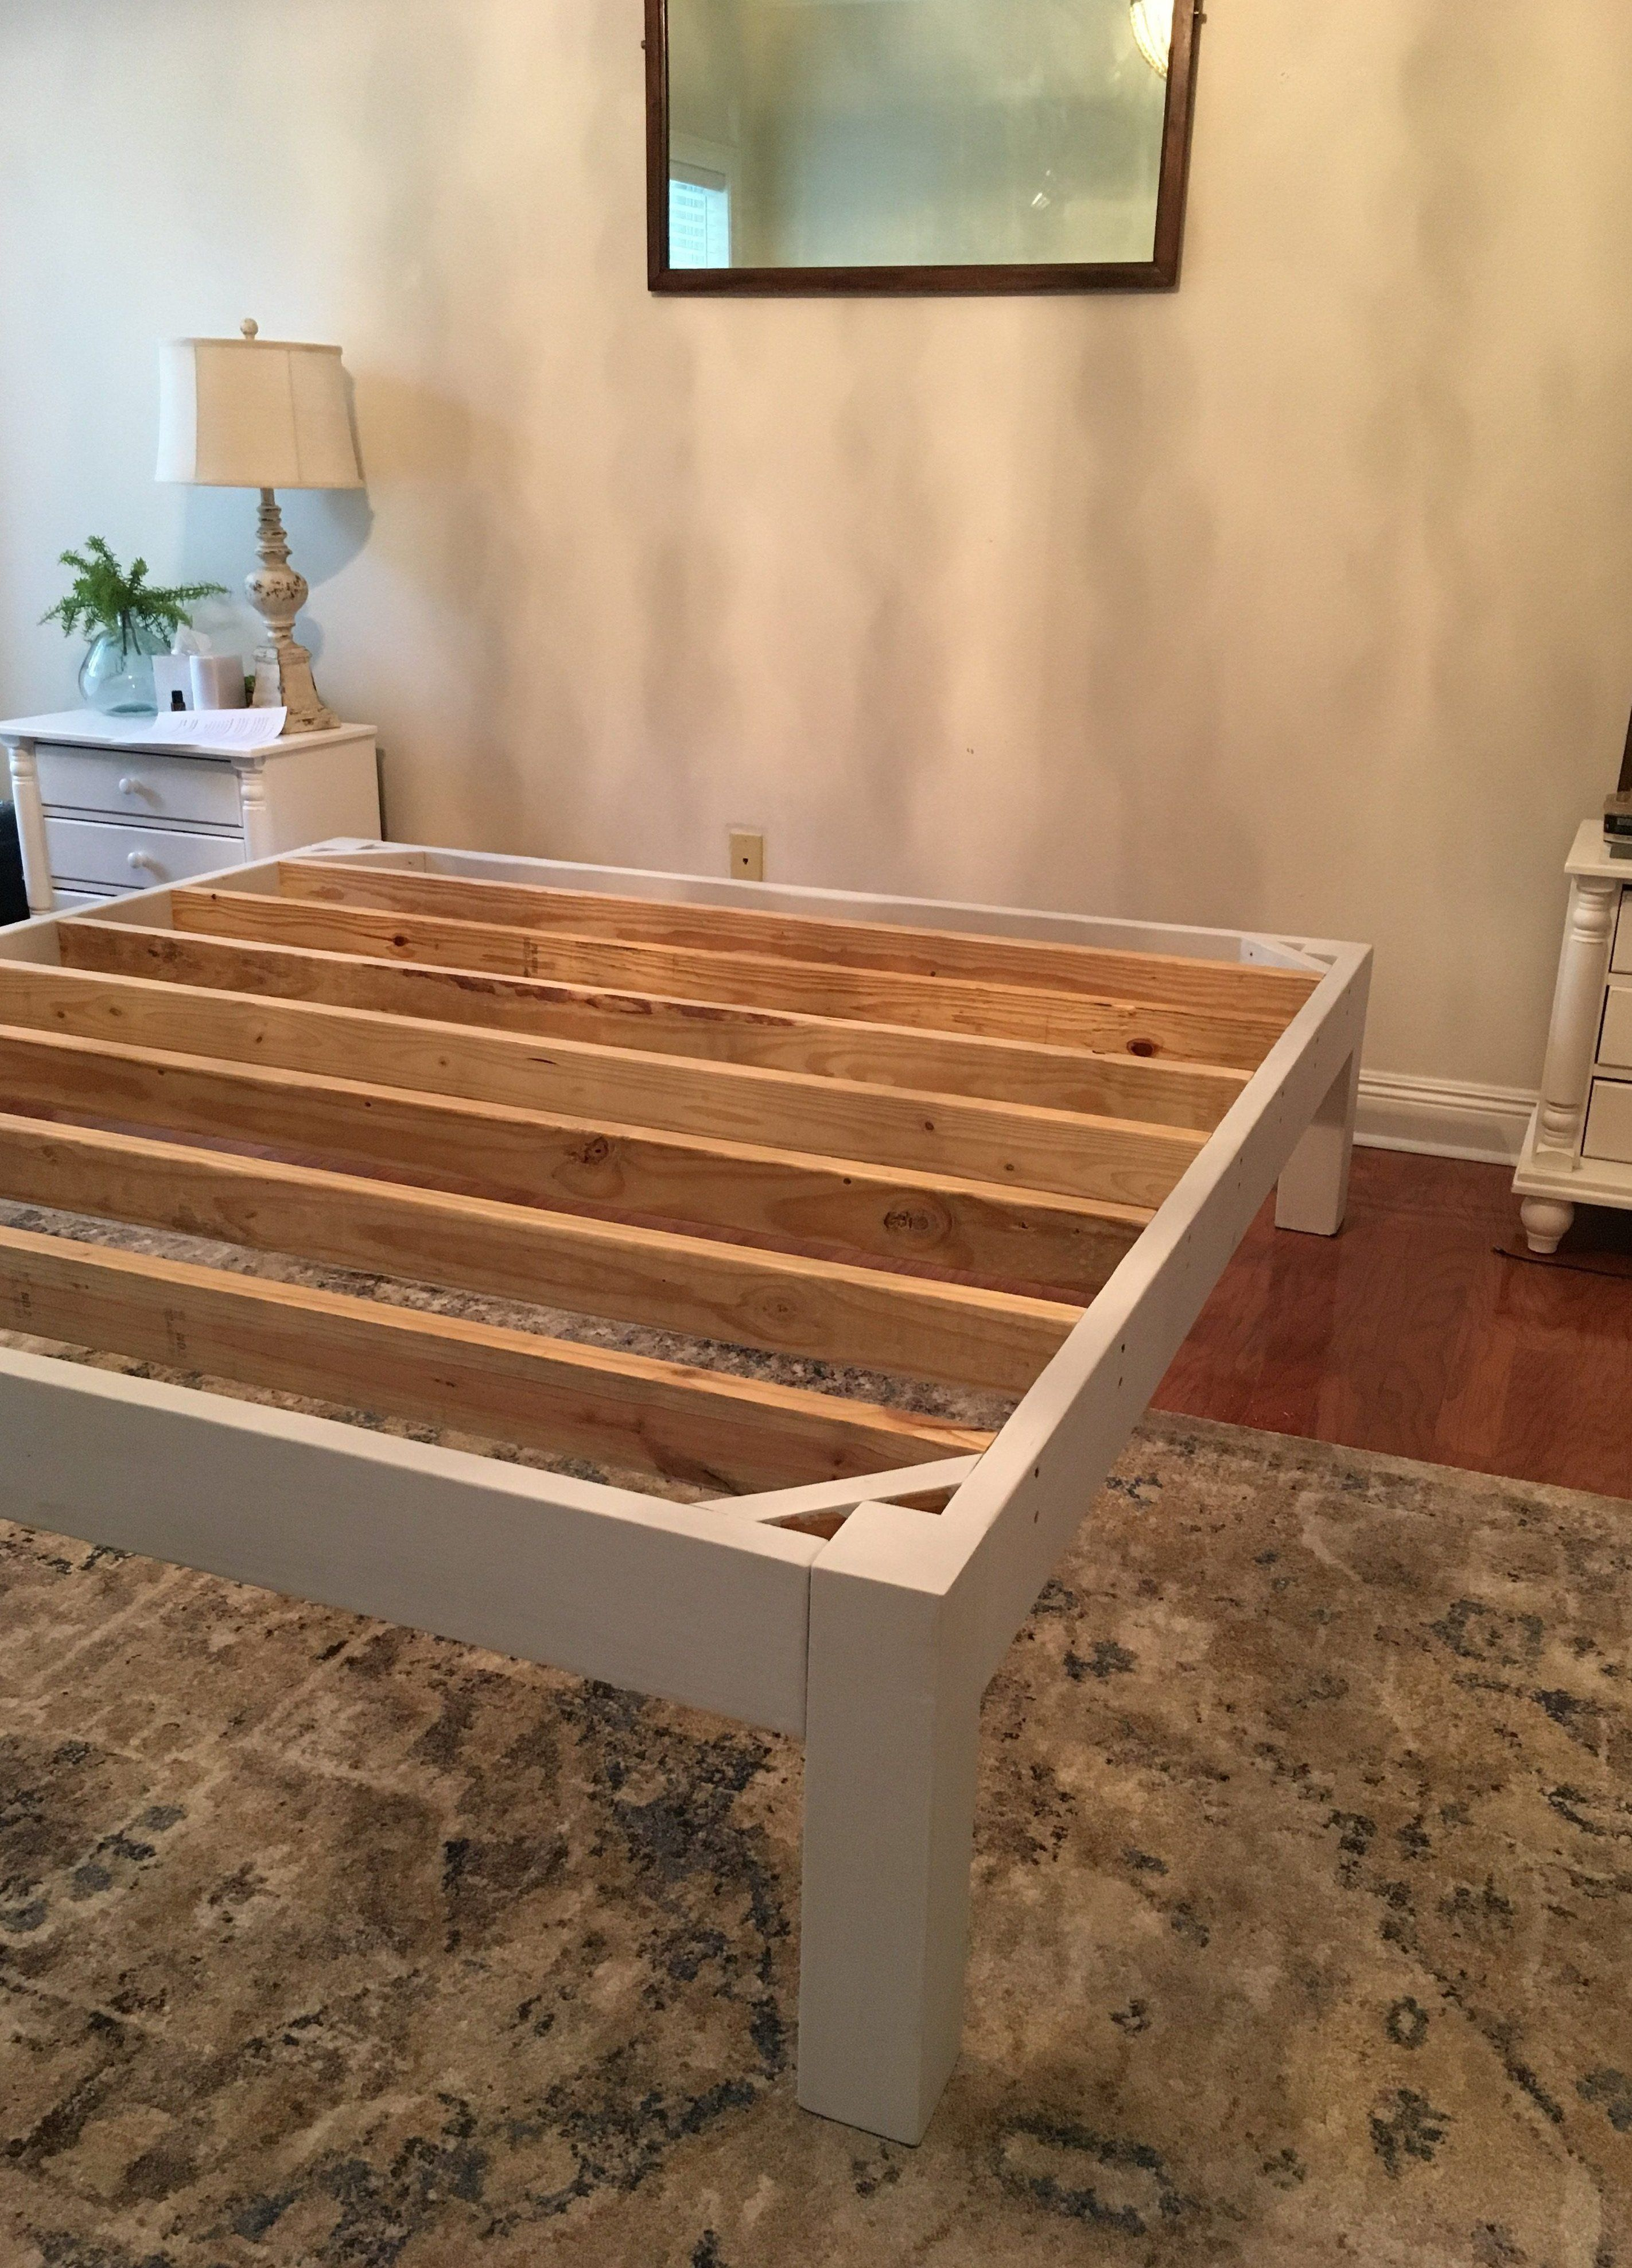 Pin by Elenor SMITH on Woodworking projects diy in 2020